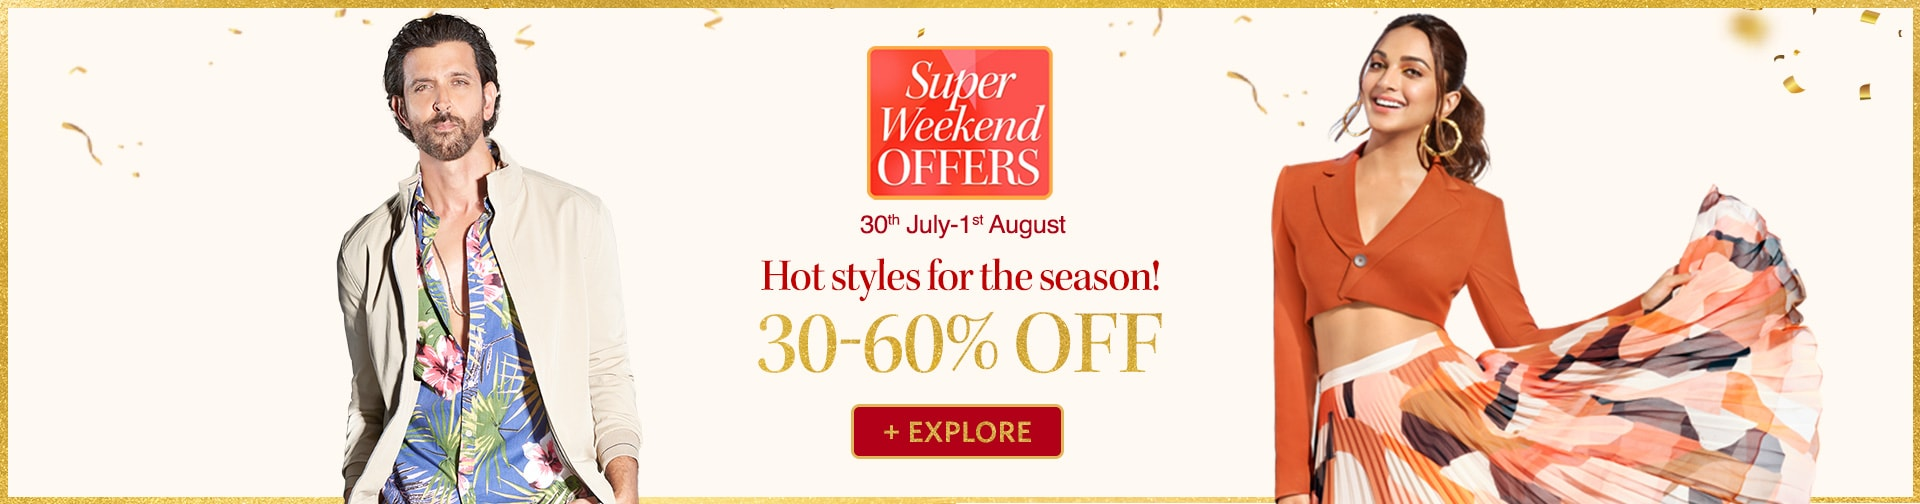 myntra.com - Avail Upto 60% Off on most products